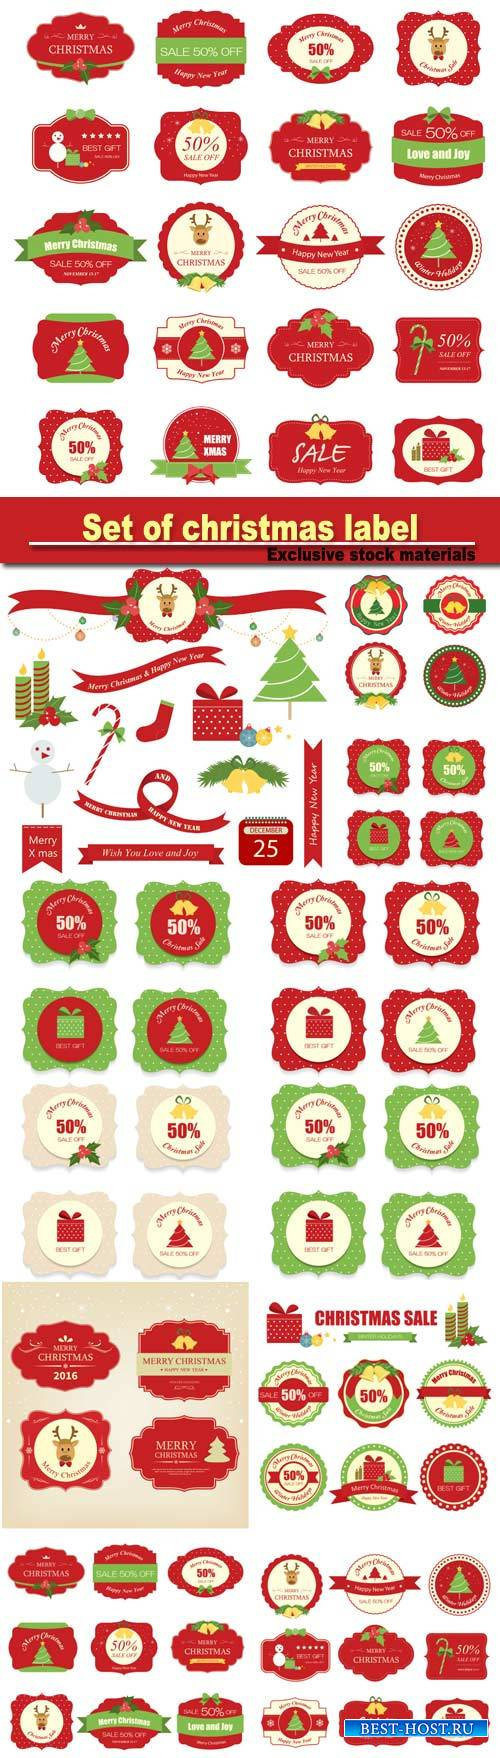 Set of christmas label and background, christmas tag, sign and symbol